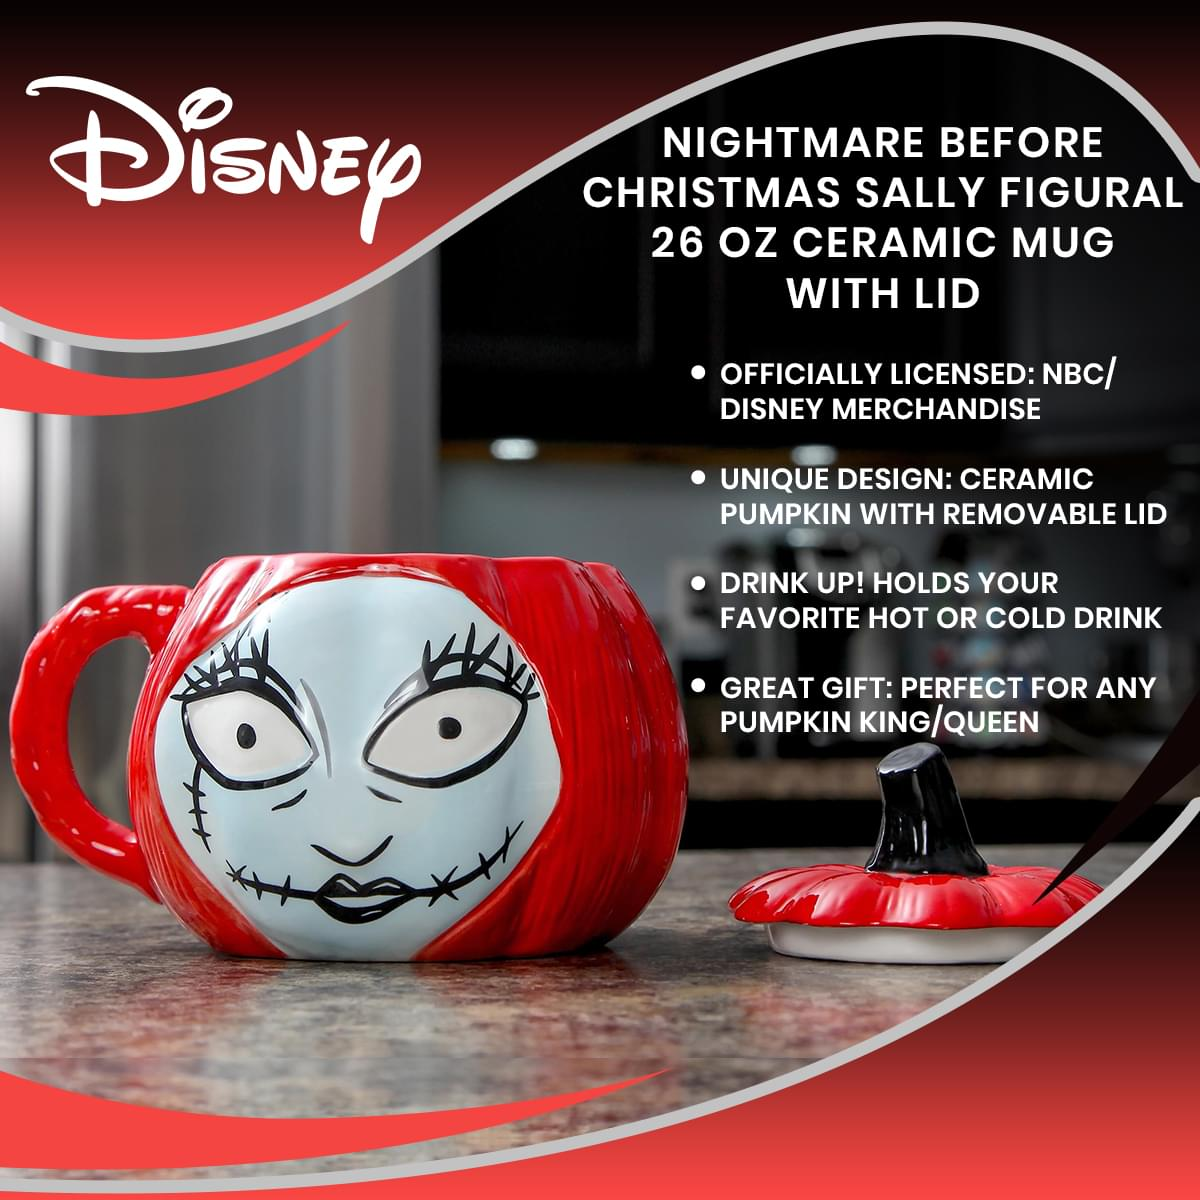 Nightmare Before Christmas Sally Figural 26 Oz Ceramic Mug With Lid